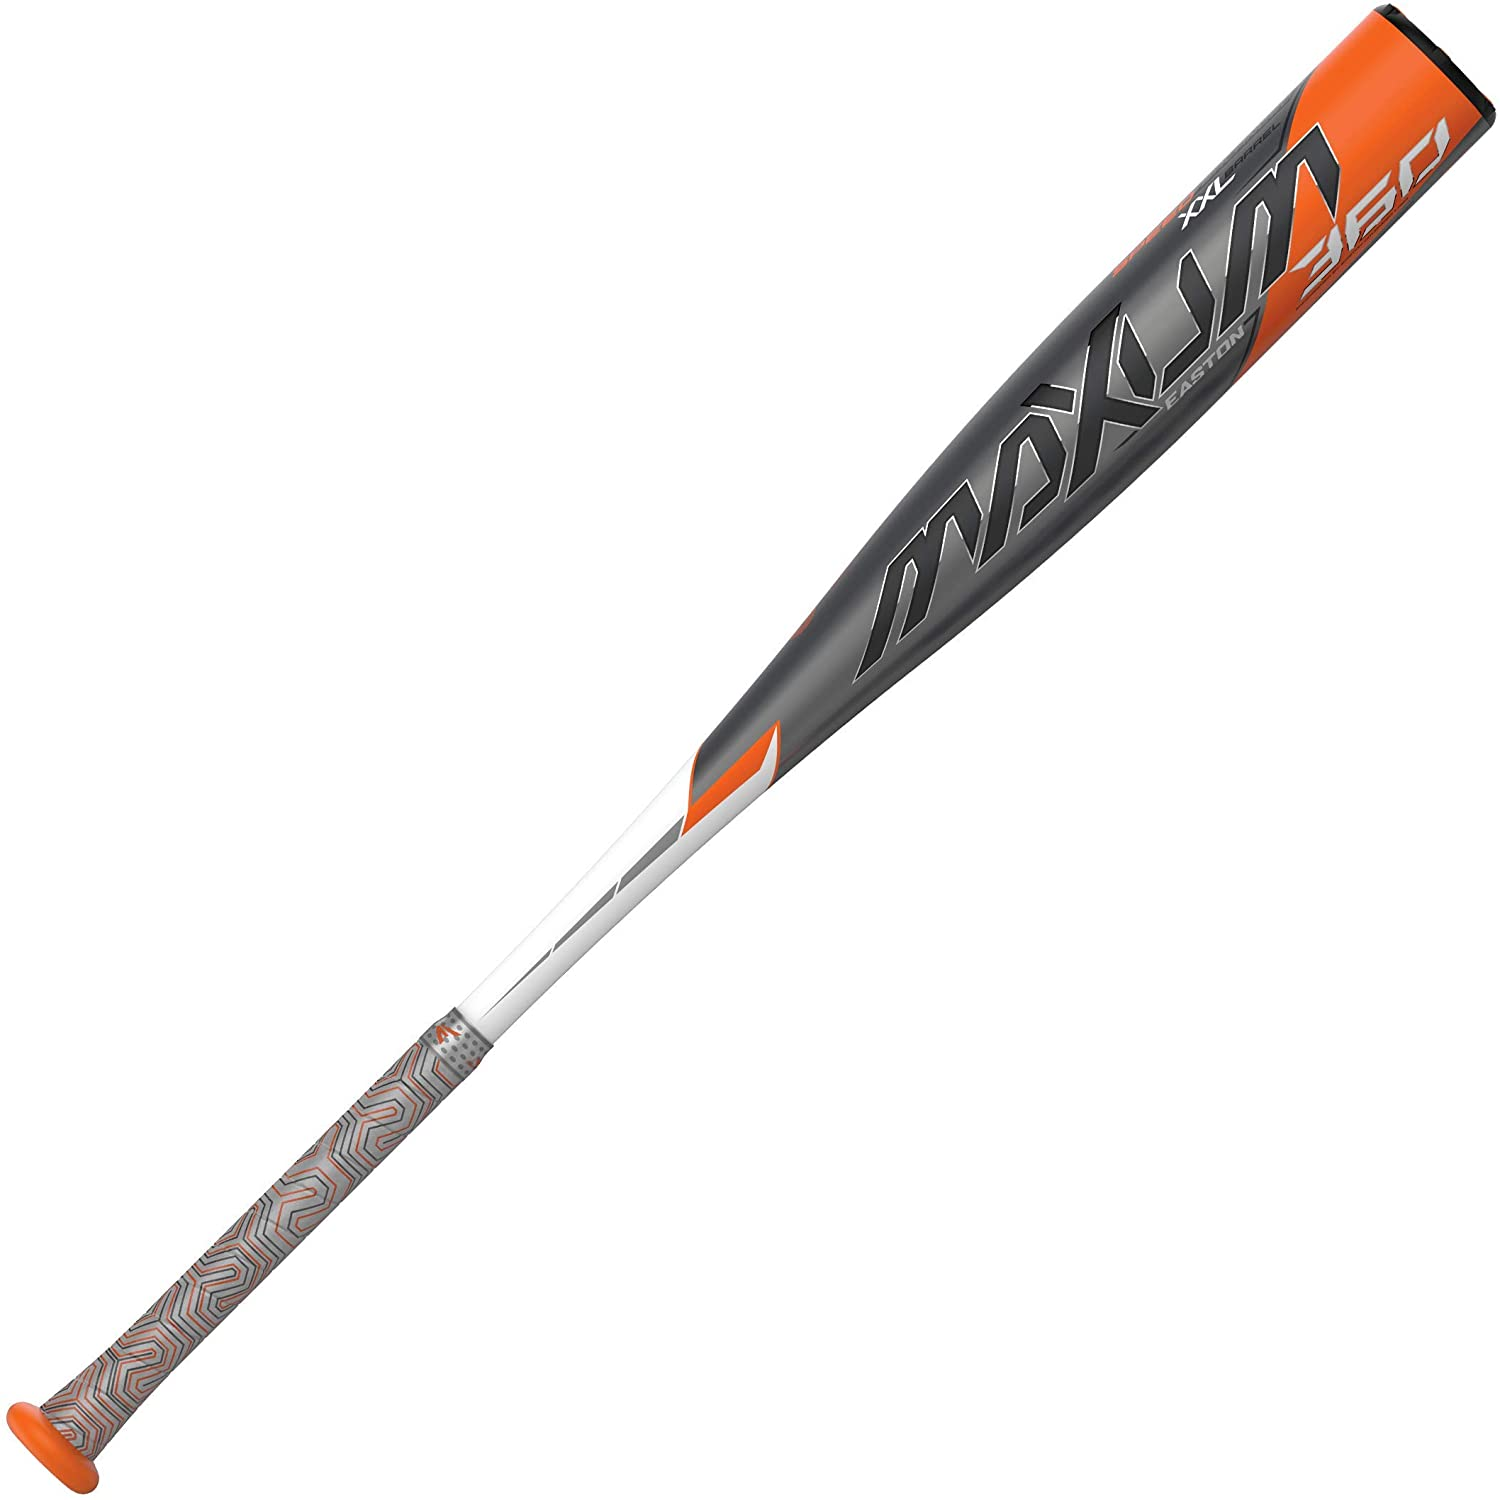 EASTON MAXUM 360 -3 BBCOR Baseball Bat | 2 5/8 inch XXL Barrel | 2020 | 1 Piece Composite | Seamless Carbon Construction | XXL Barre